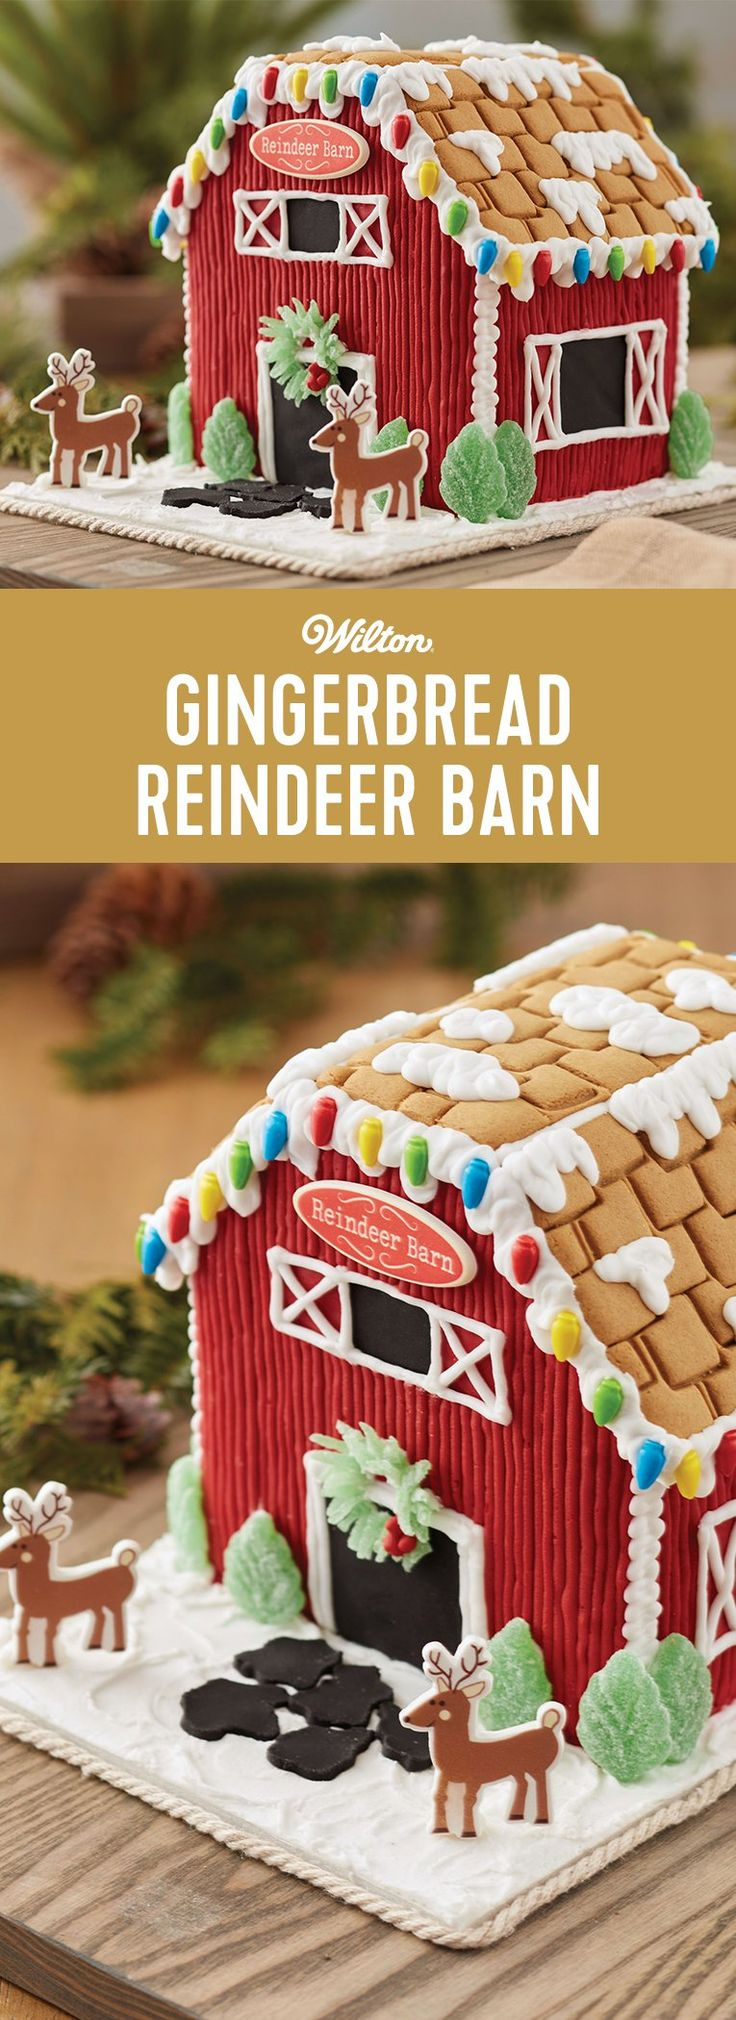 Santa's Reindeer Gingerbread Barn - Kids' will be thrilled to decorate this gingerbread reindeer barn. Candy, icing, and fondant add the color and fun. The reindeer and sign icing decorations add the holiday magic. After all, when there are reindeer around, Santa is sure to be watching! #gingerbreadhouse #christmas #wiltongingerbreadhouse #wiltoncakes